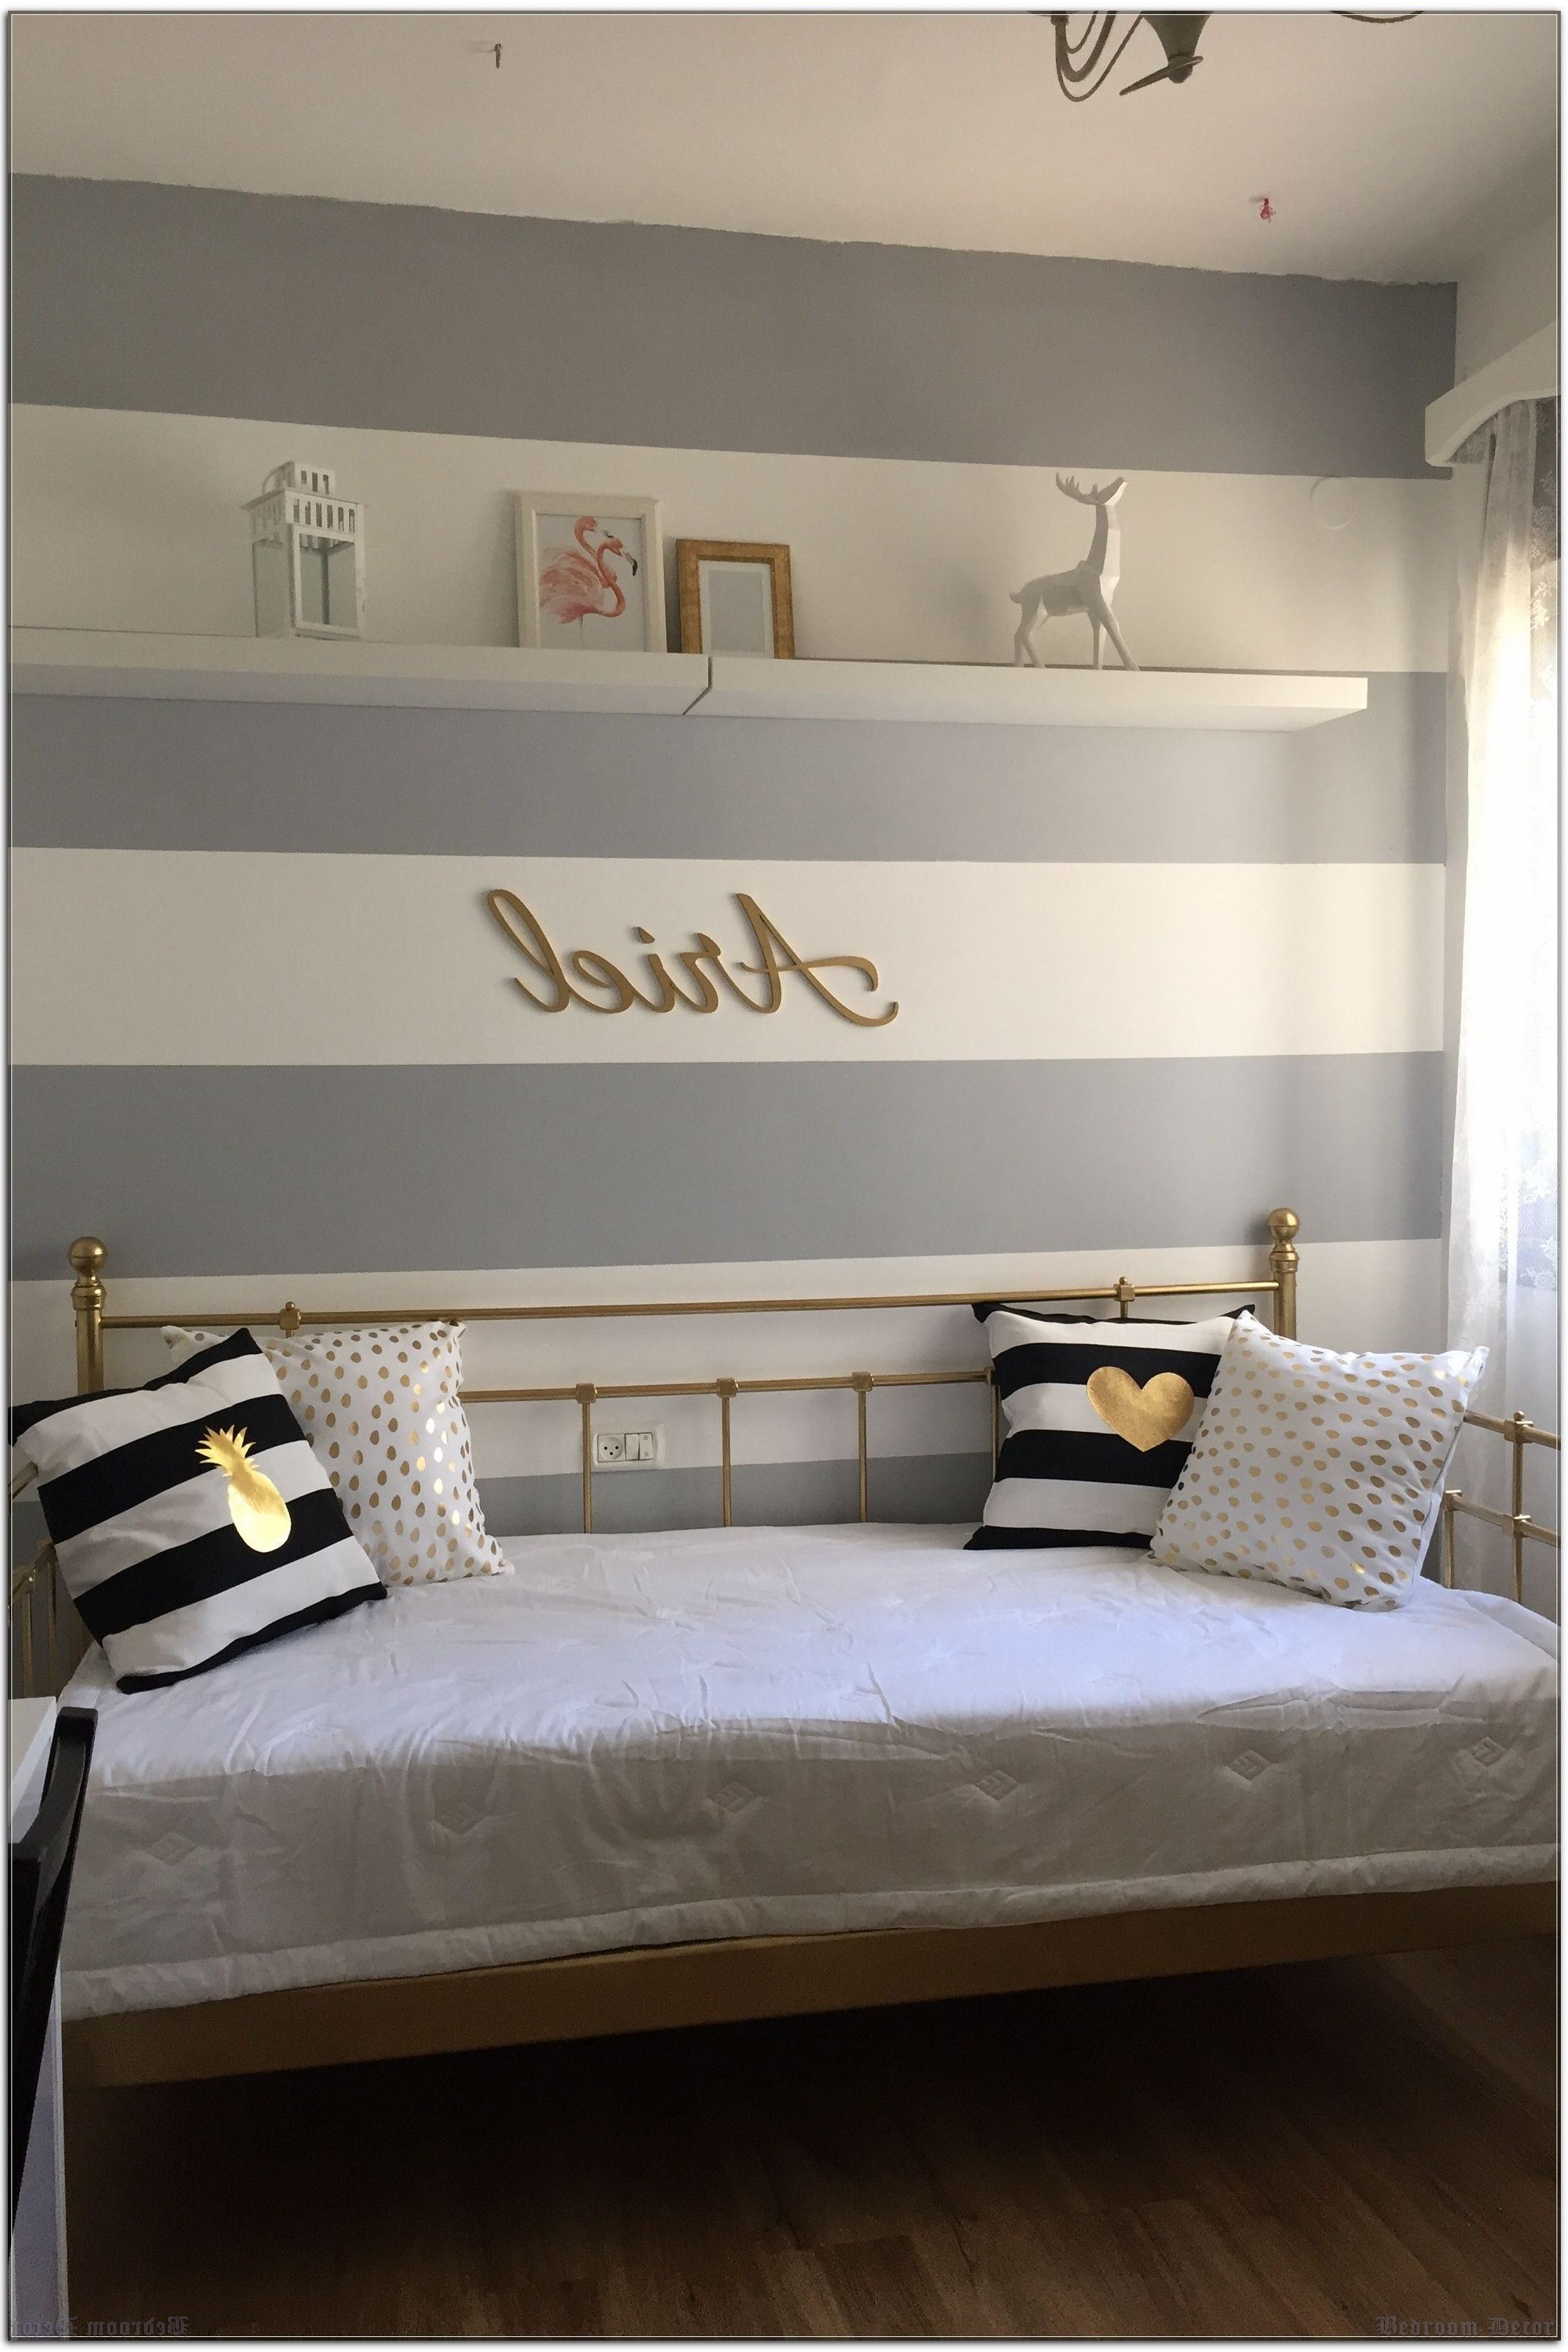 5 Ways You Can Get More Bedroom Decor While Spending Less